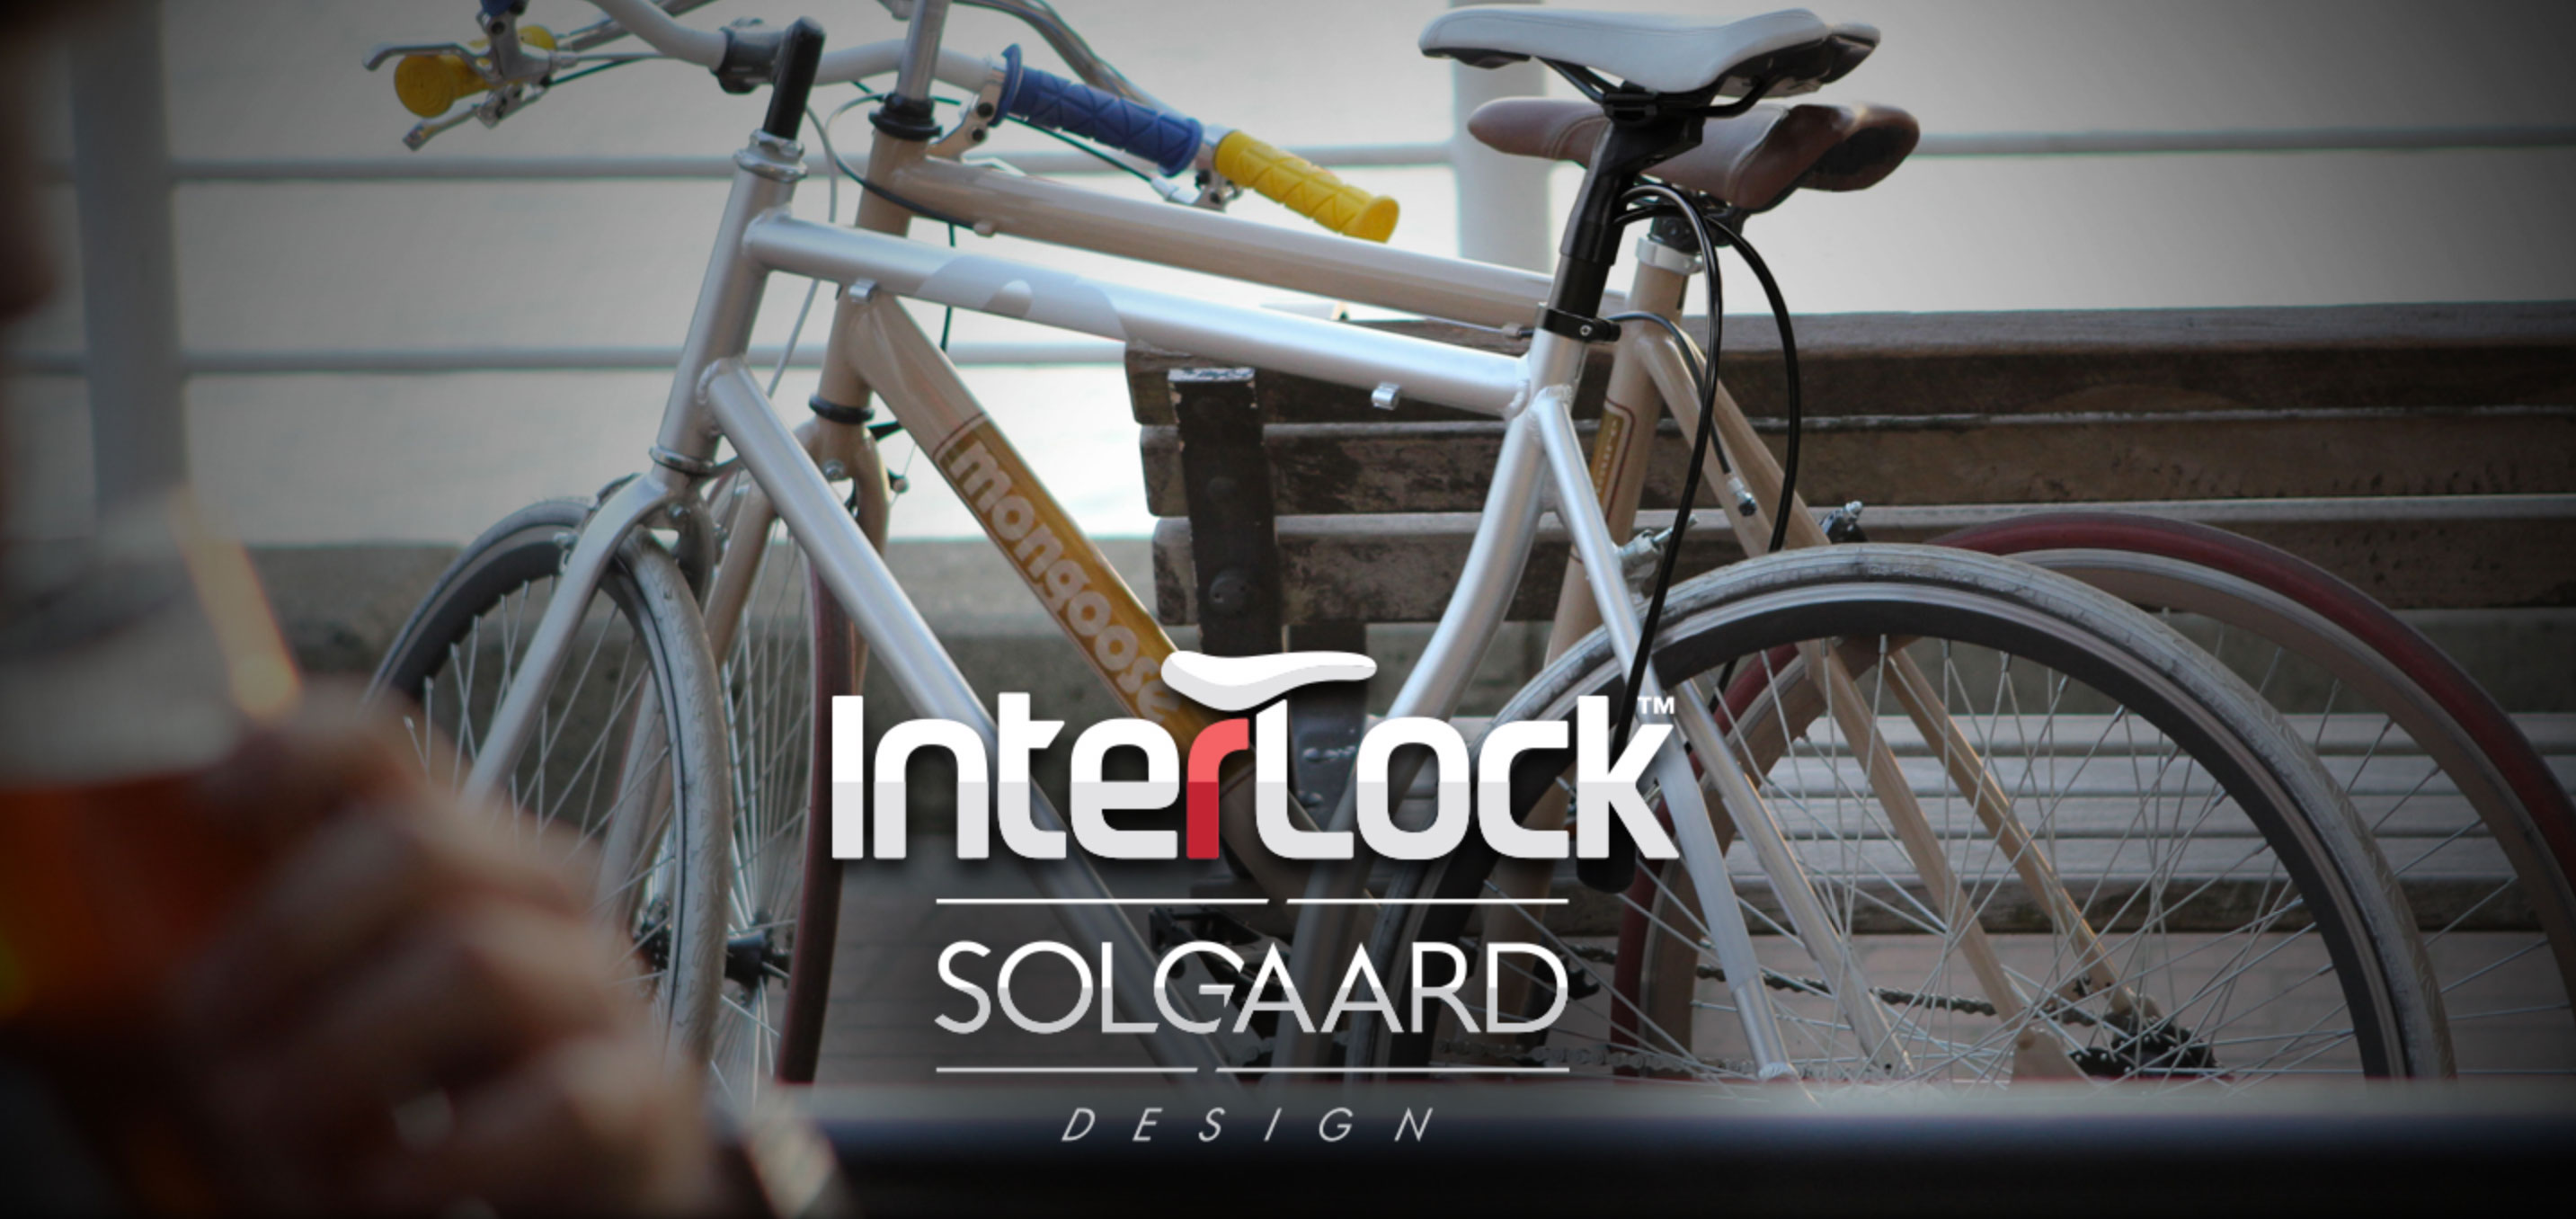 Solgaard Design – The Interlock Website Screenshot